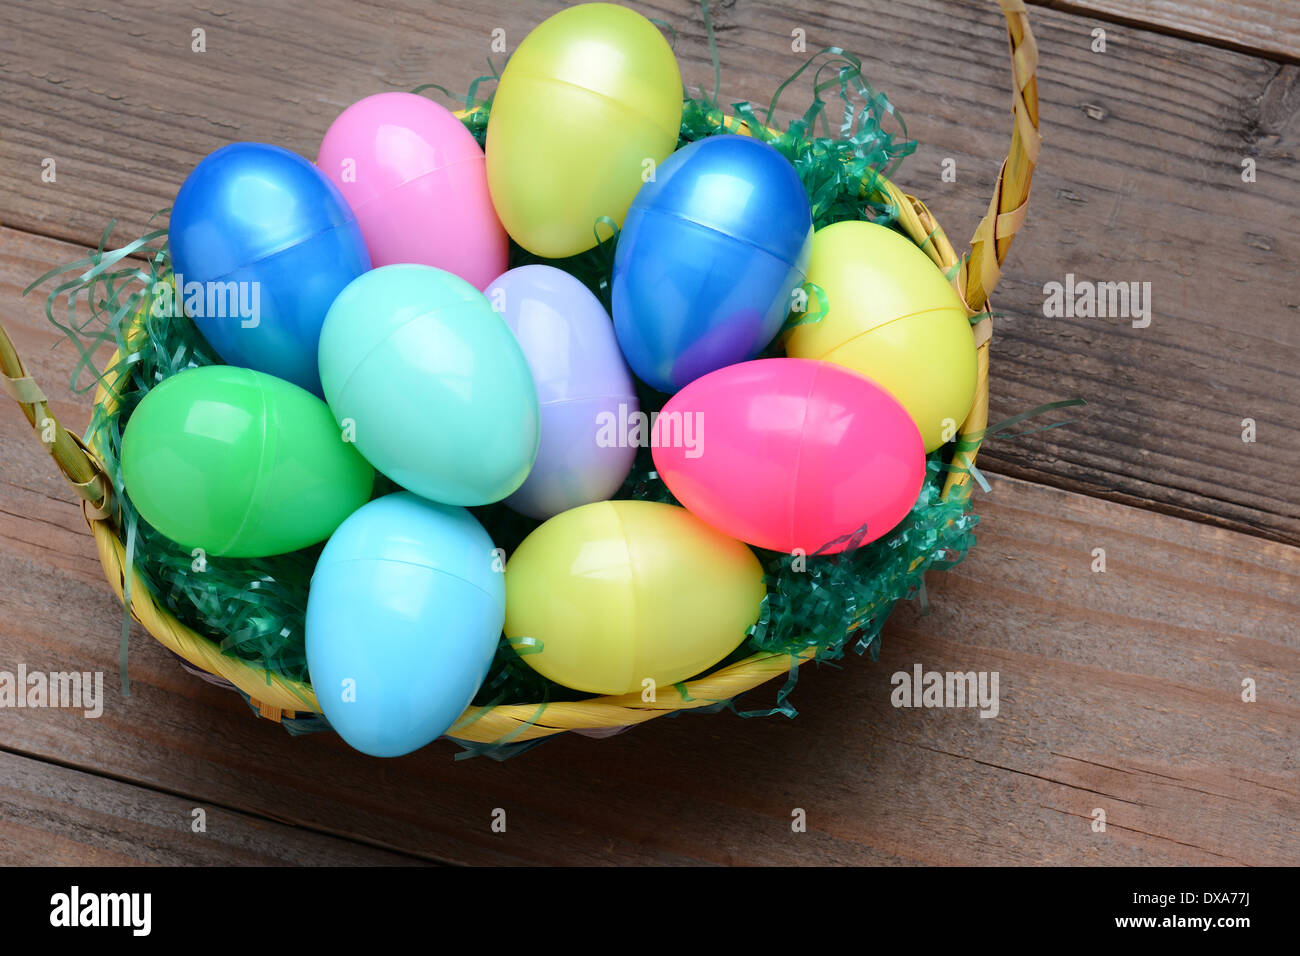 High Angle View Of A Basket Filled With Colorful Plastic Easter Eggs Horizontal Format On